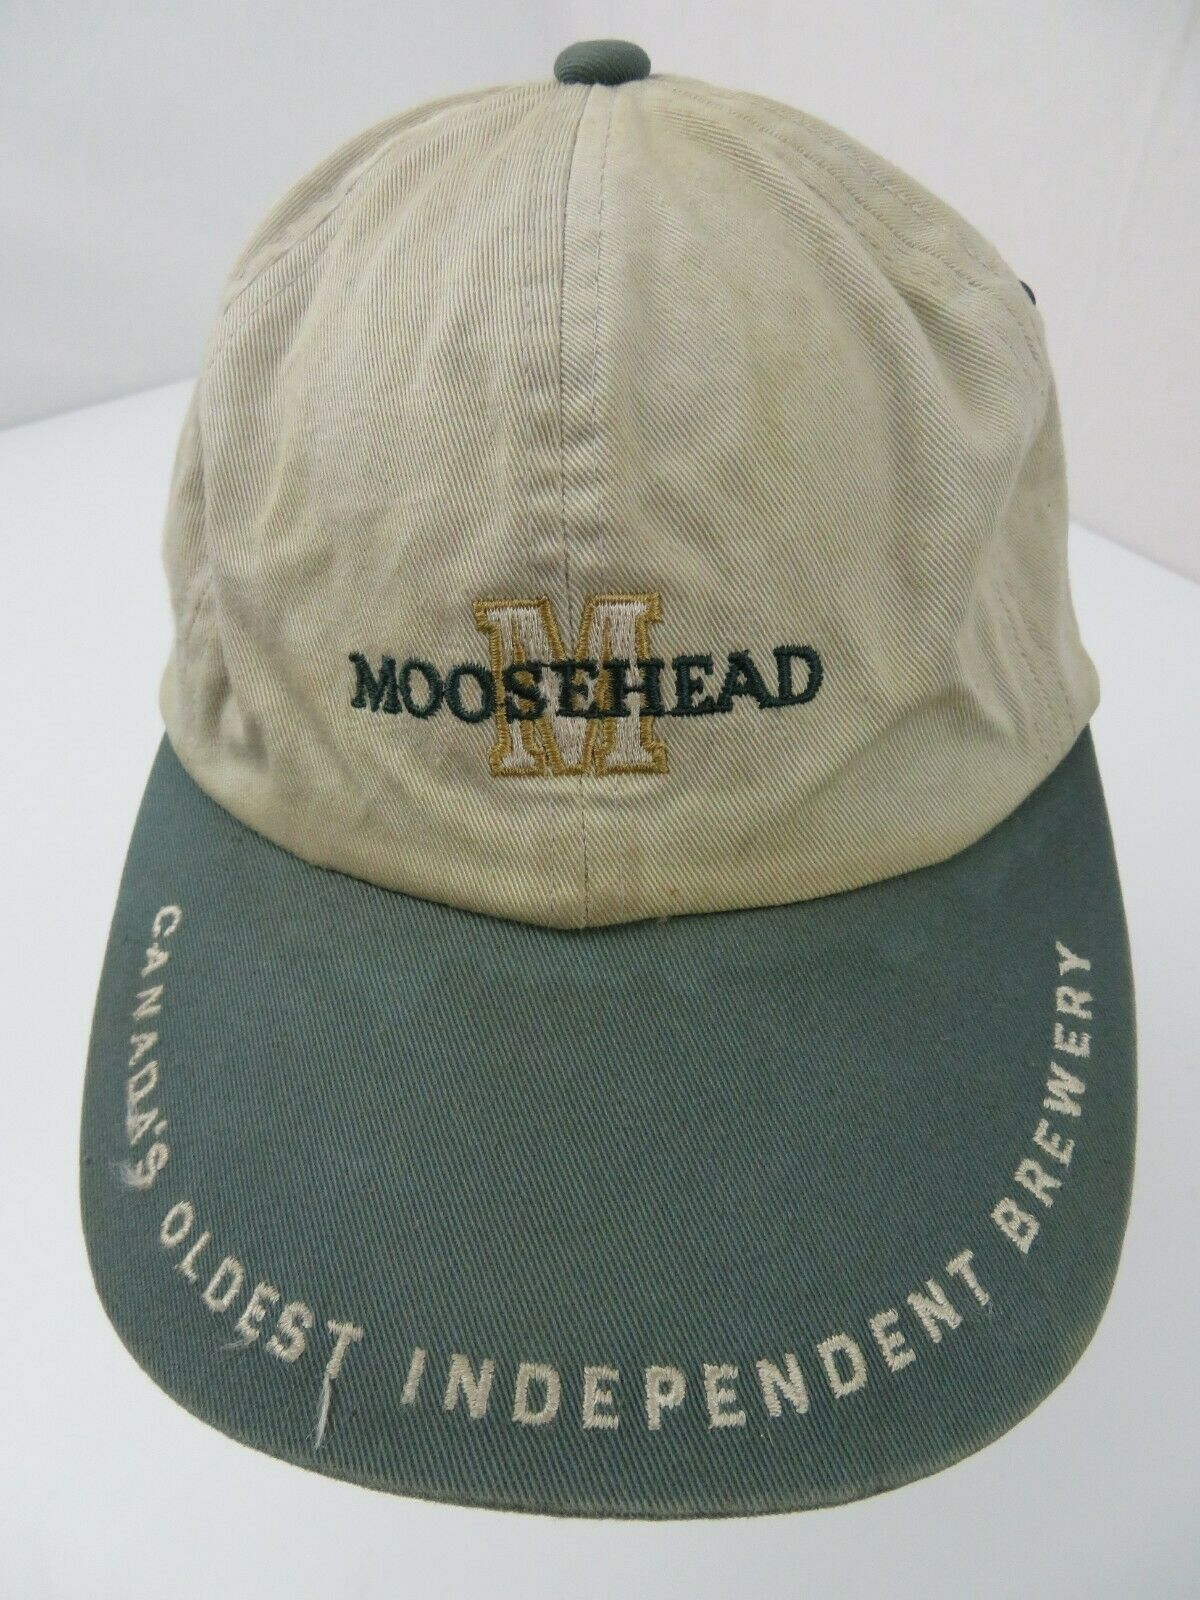 Primary image for Moosehead Canada's Oldest Independent Brewery Adjustable Adult Cap Hat